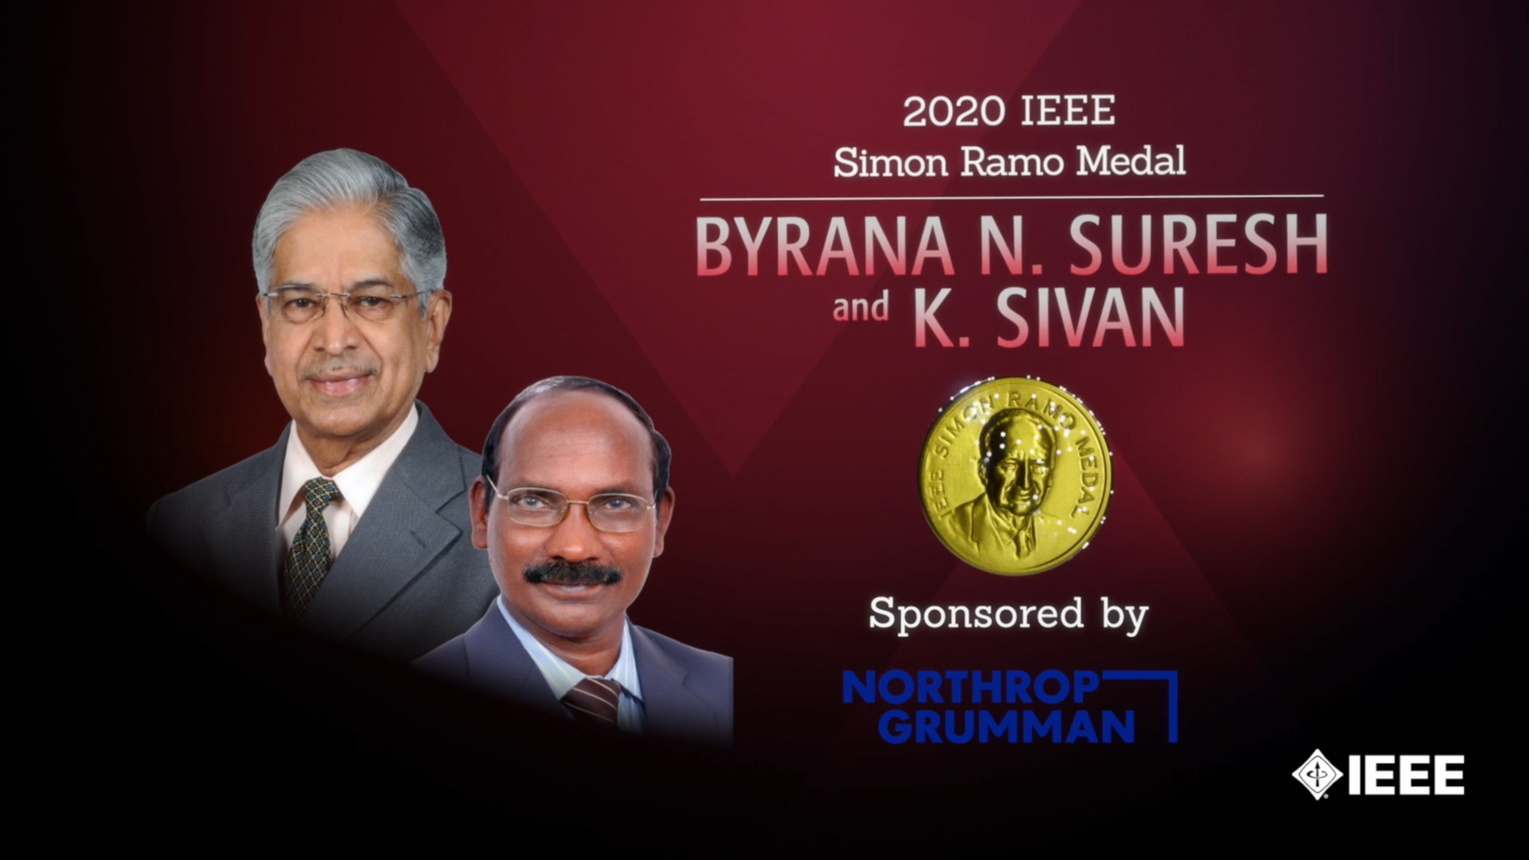 Honors 2020: Byrana N. Suresh & K. Sivan Win the IEEE Simon Ramo Medal